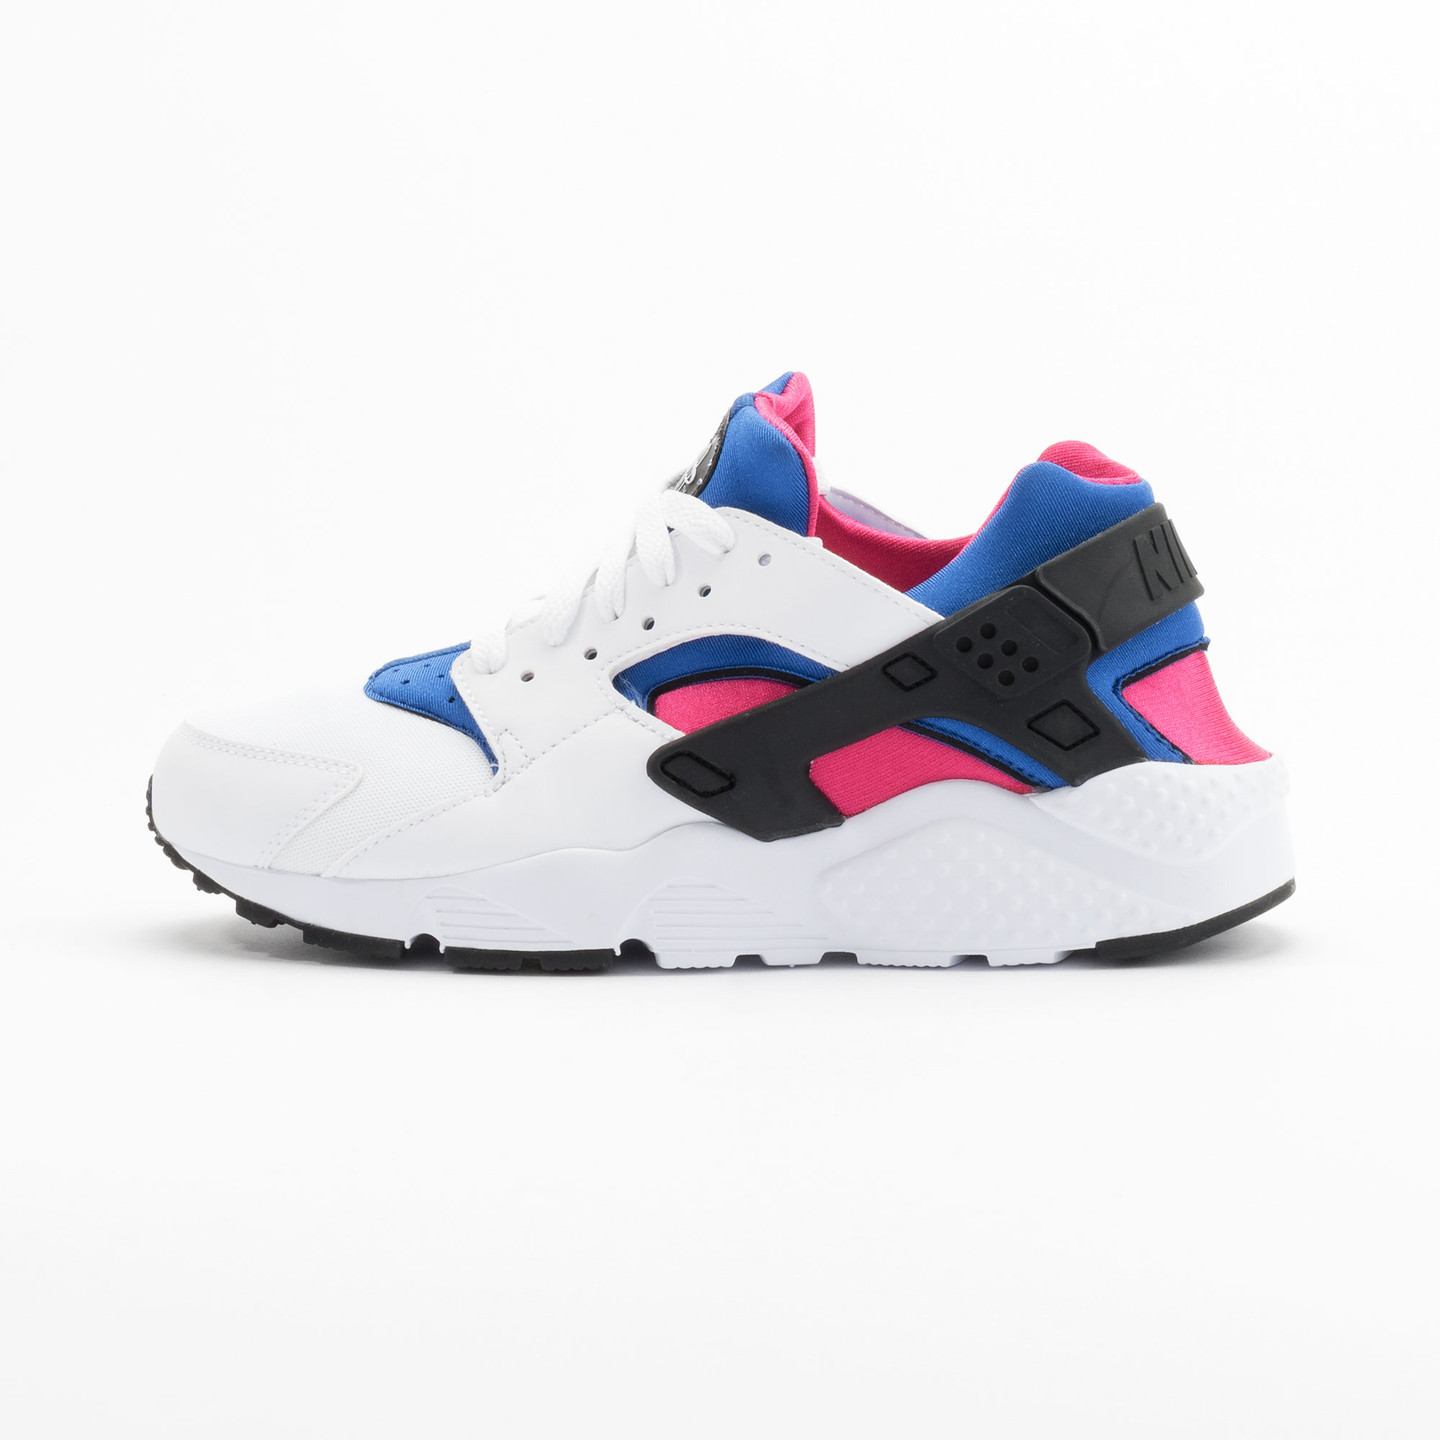 Nike Huarache Run GS White / Black / Game-Royal / Vivid-Pink 654275-106-38